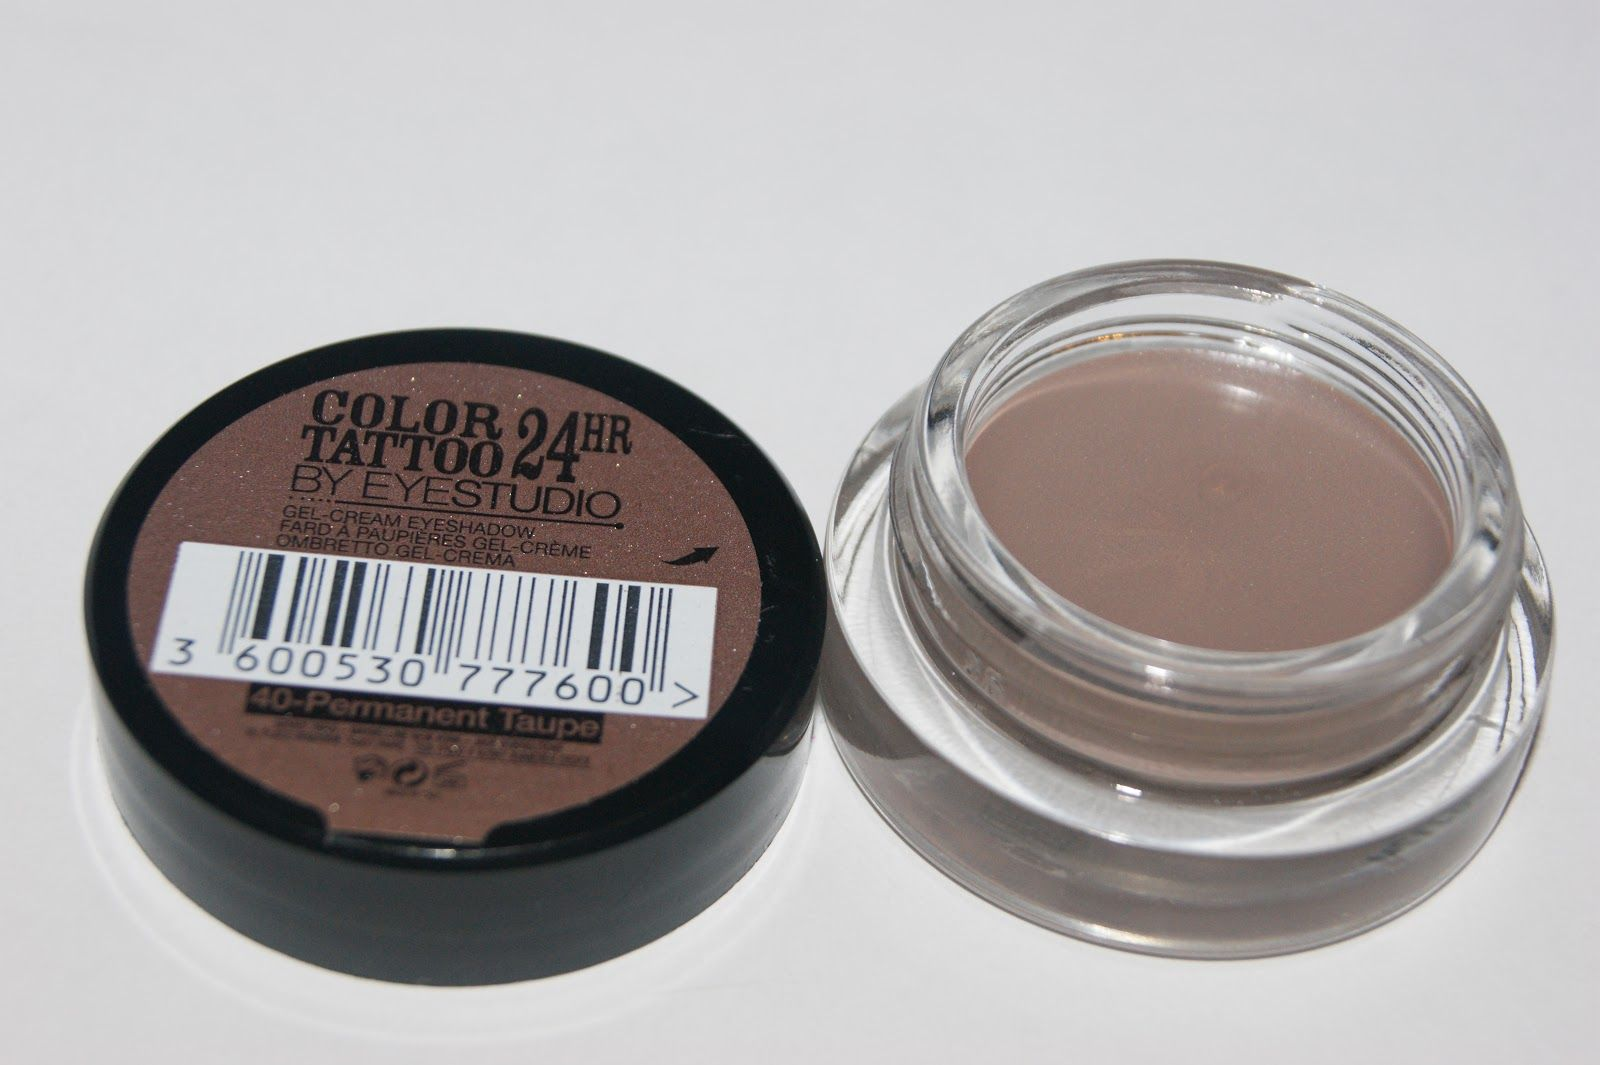 Maybelline Color Tattoo 24hour gelcream eyeshadow in